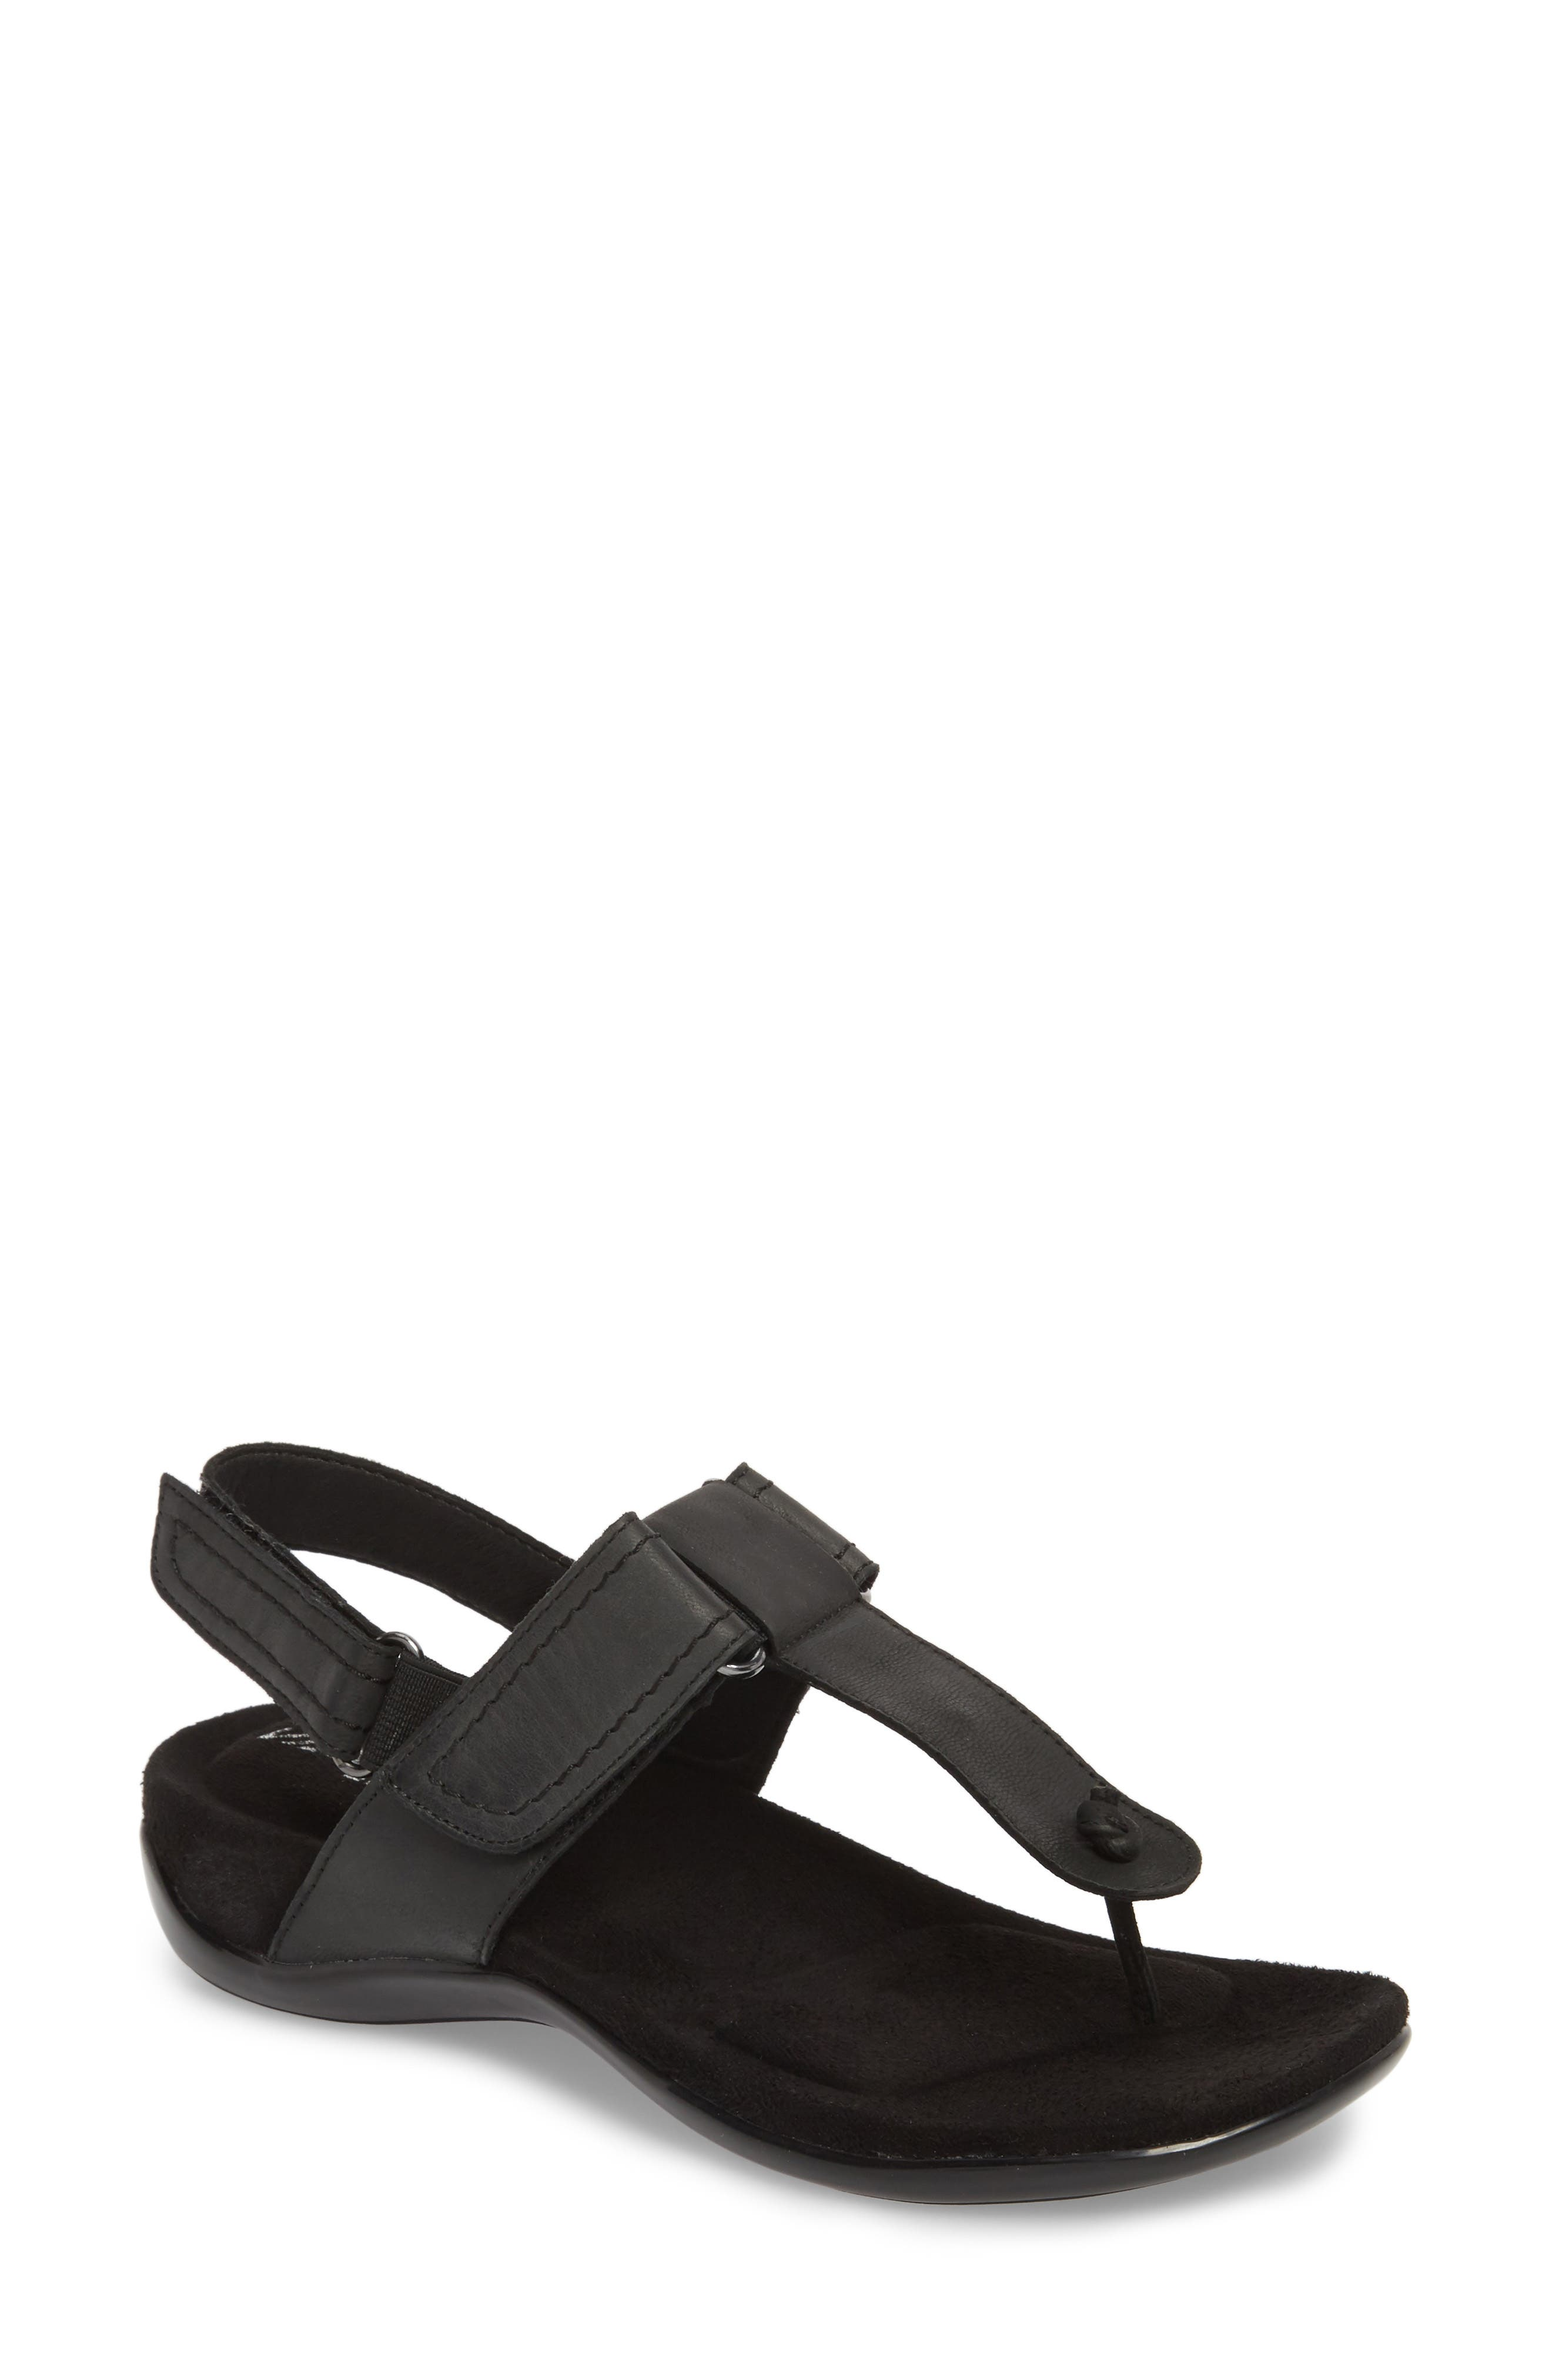 Valley Sandal,                             Main thumbnail 1, color,                             Black Leather